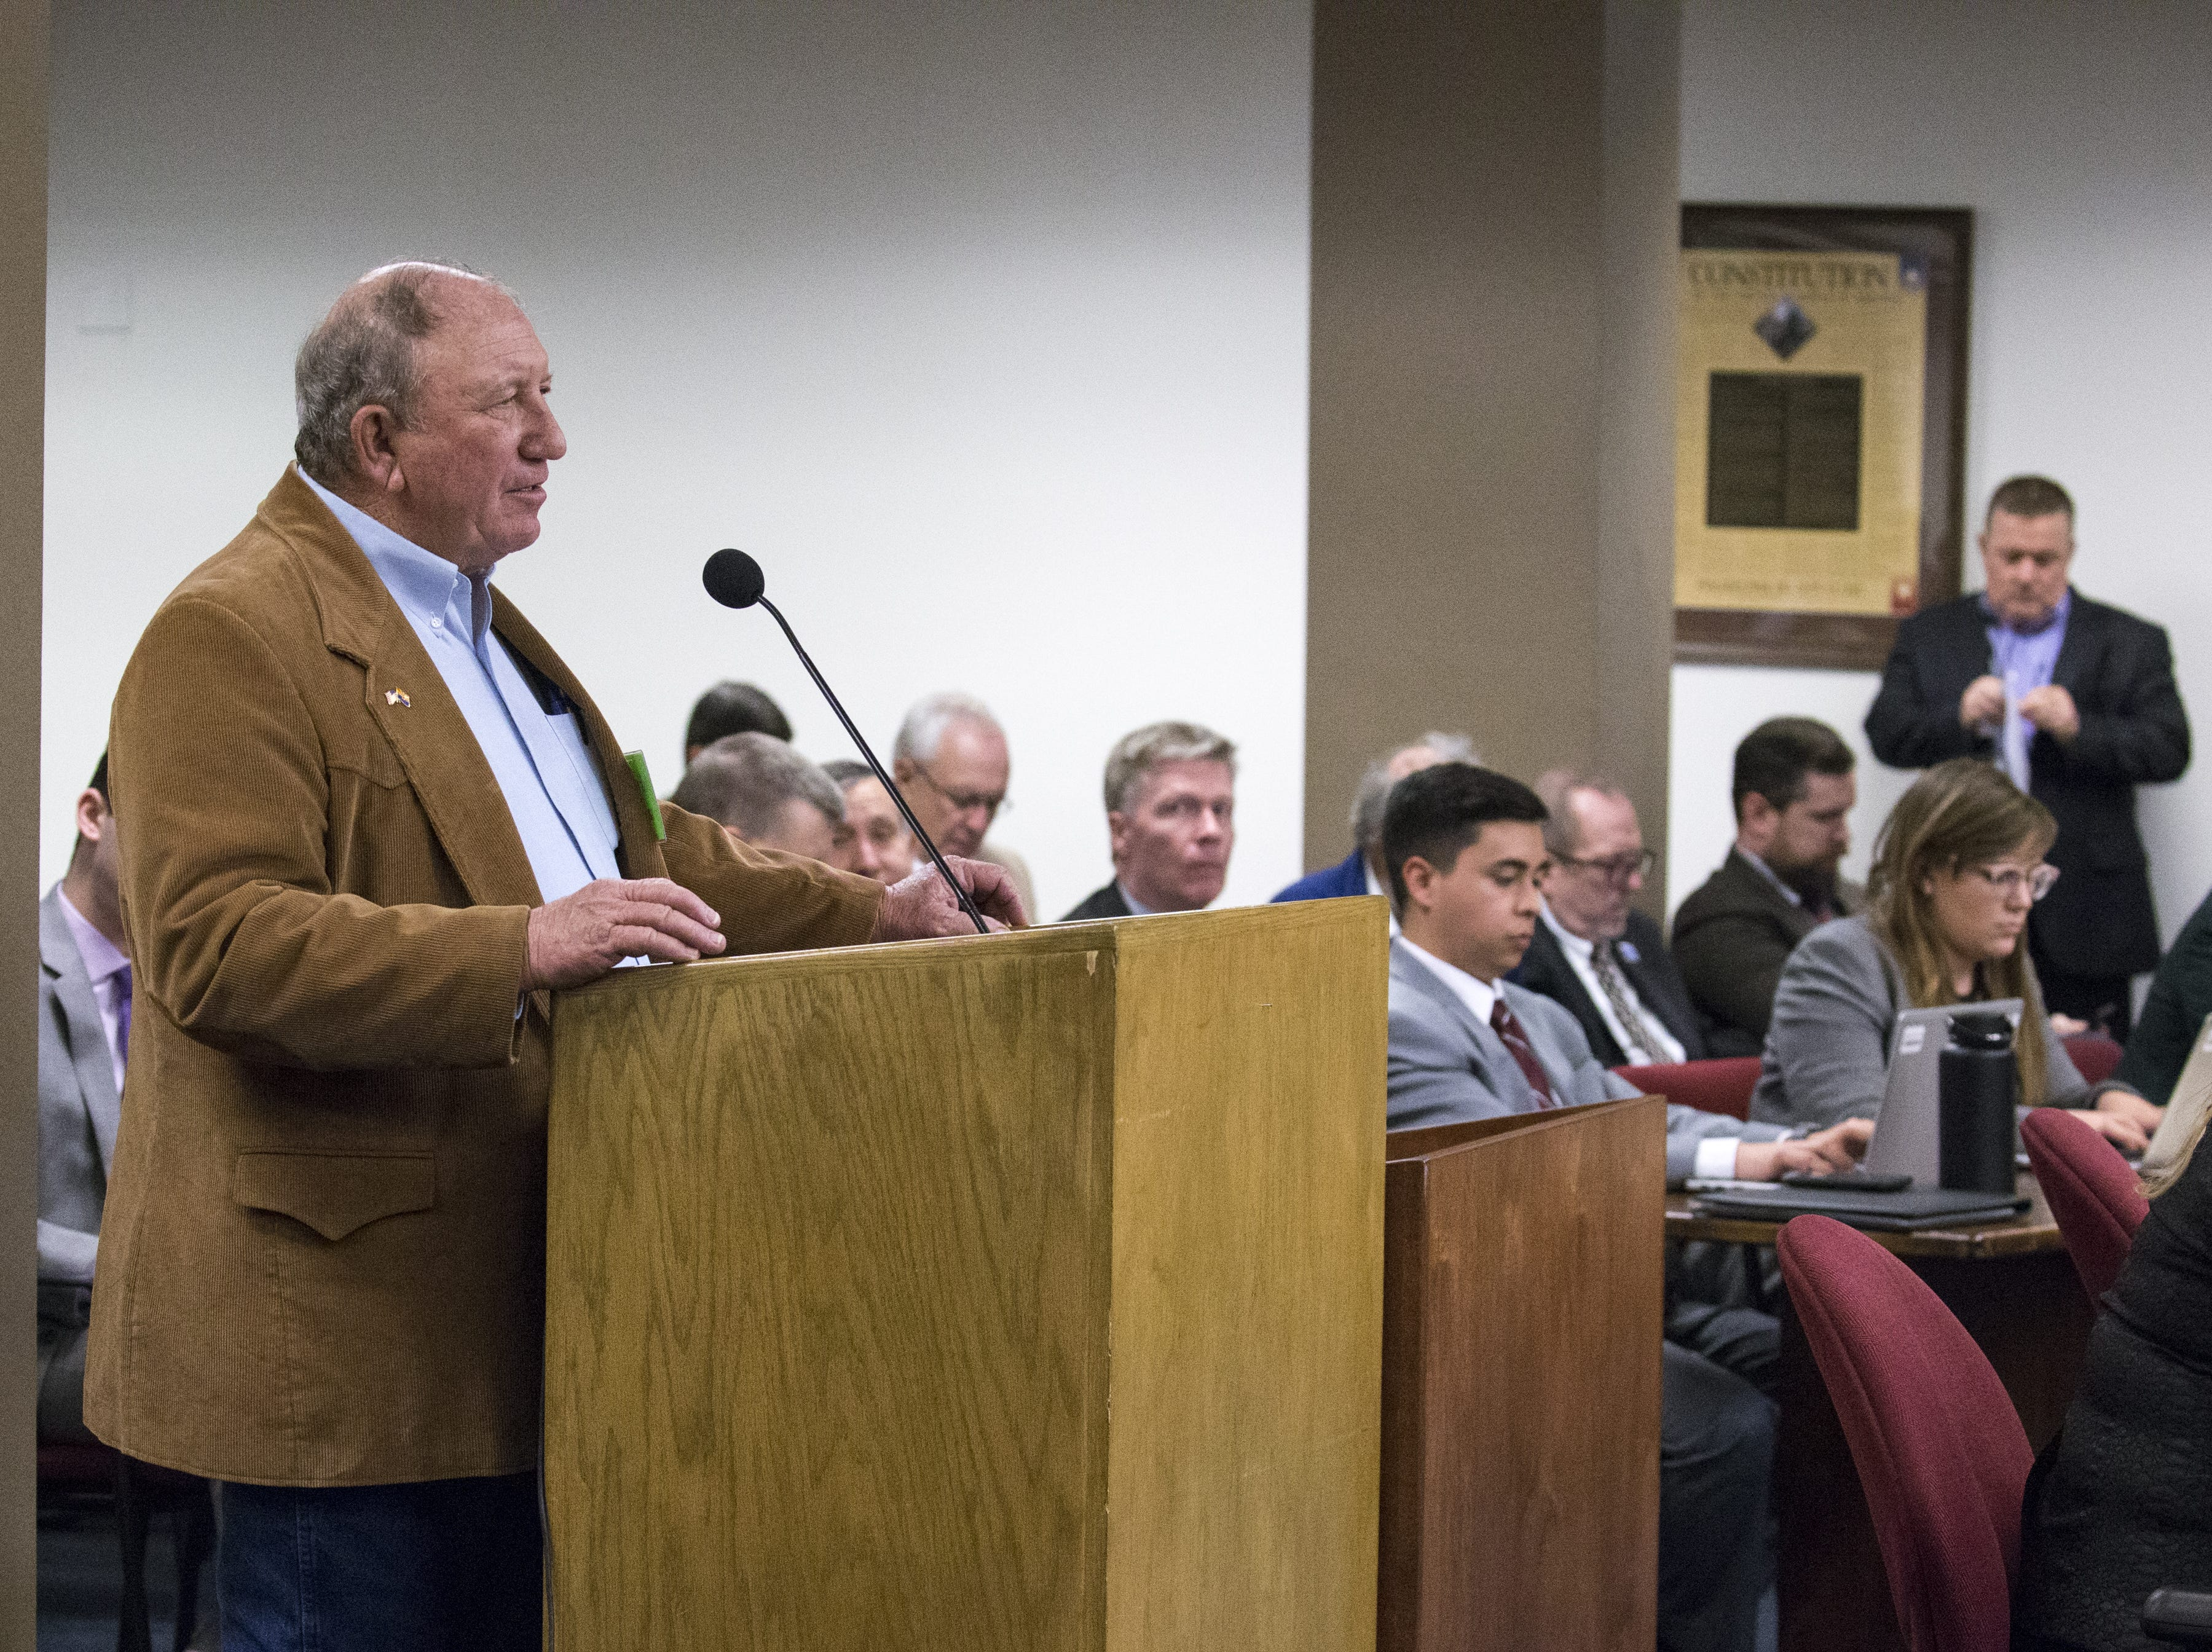 Pinal County Supervisor Steve Miller speaks during a hearing on SB 1227, Jan. 30, 2019, at the Arizona Senate Water and Agriculture Committee at the Arizona Capitol.